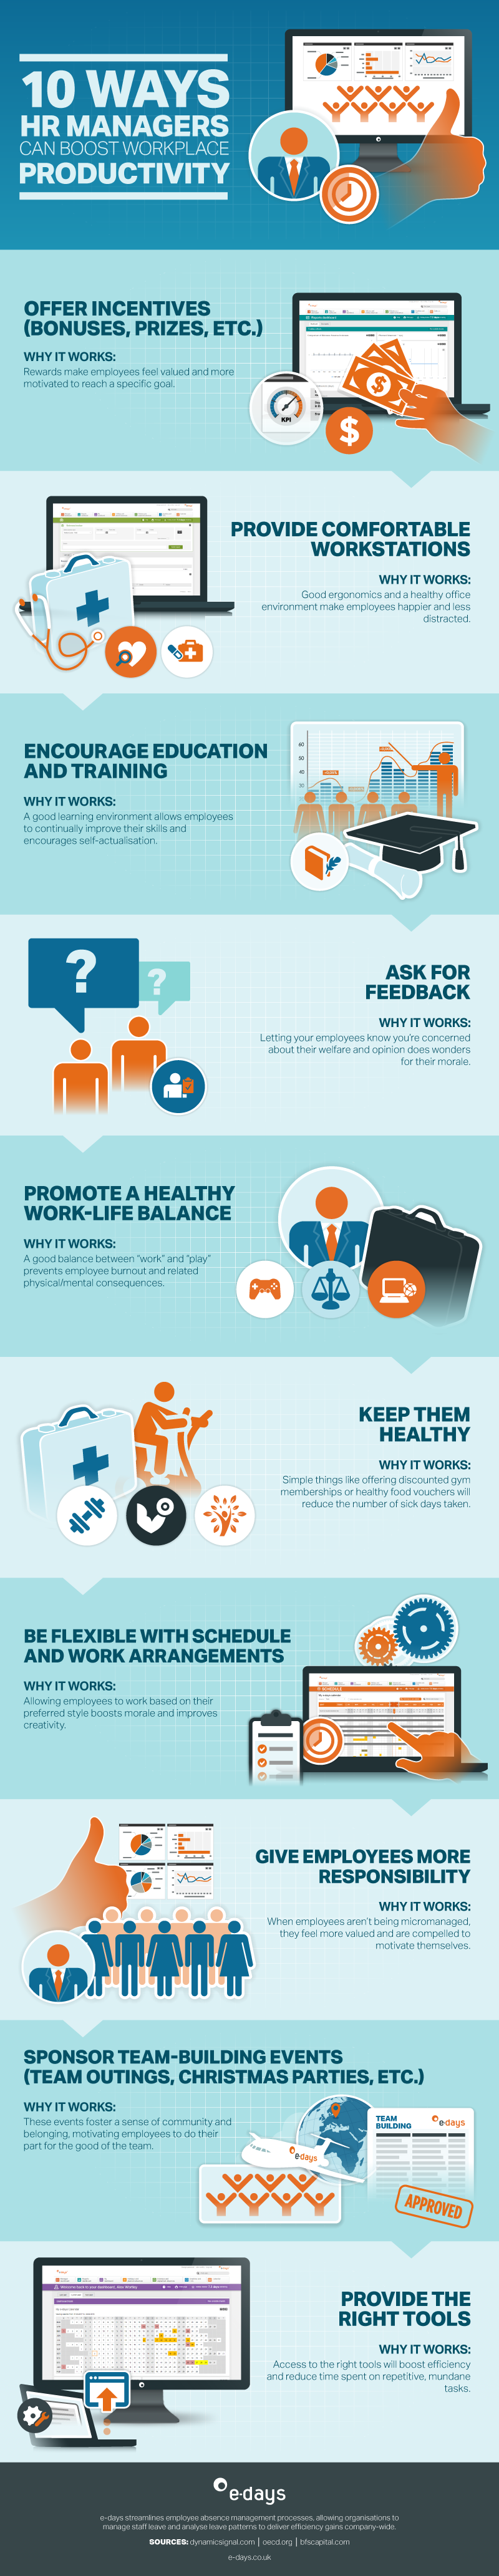 workplace productivity infographic